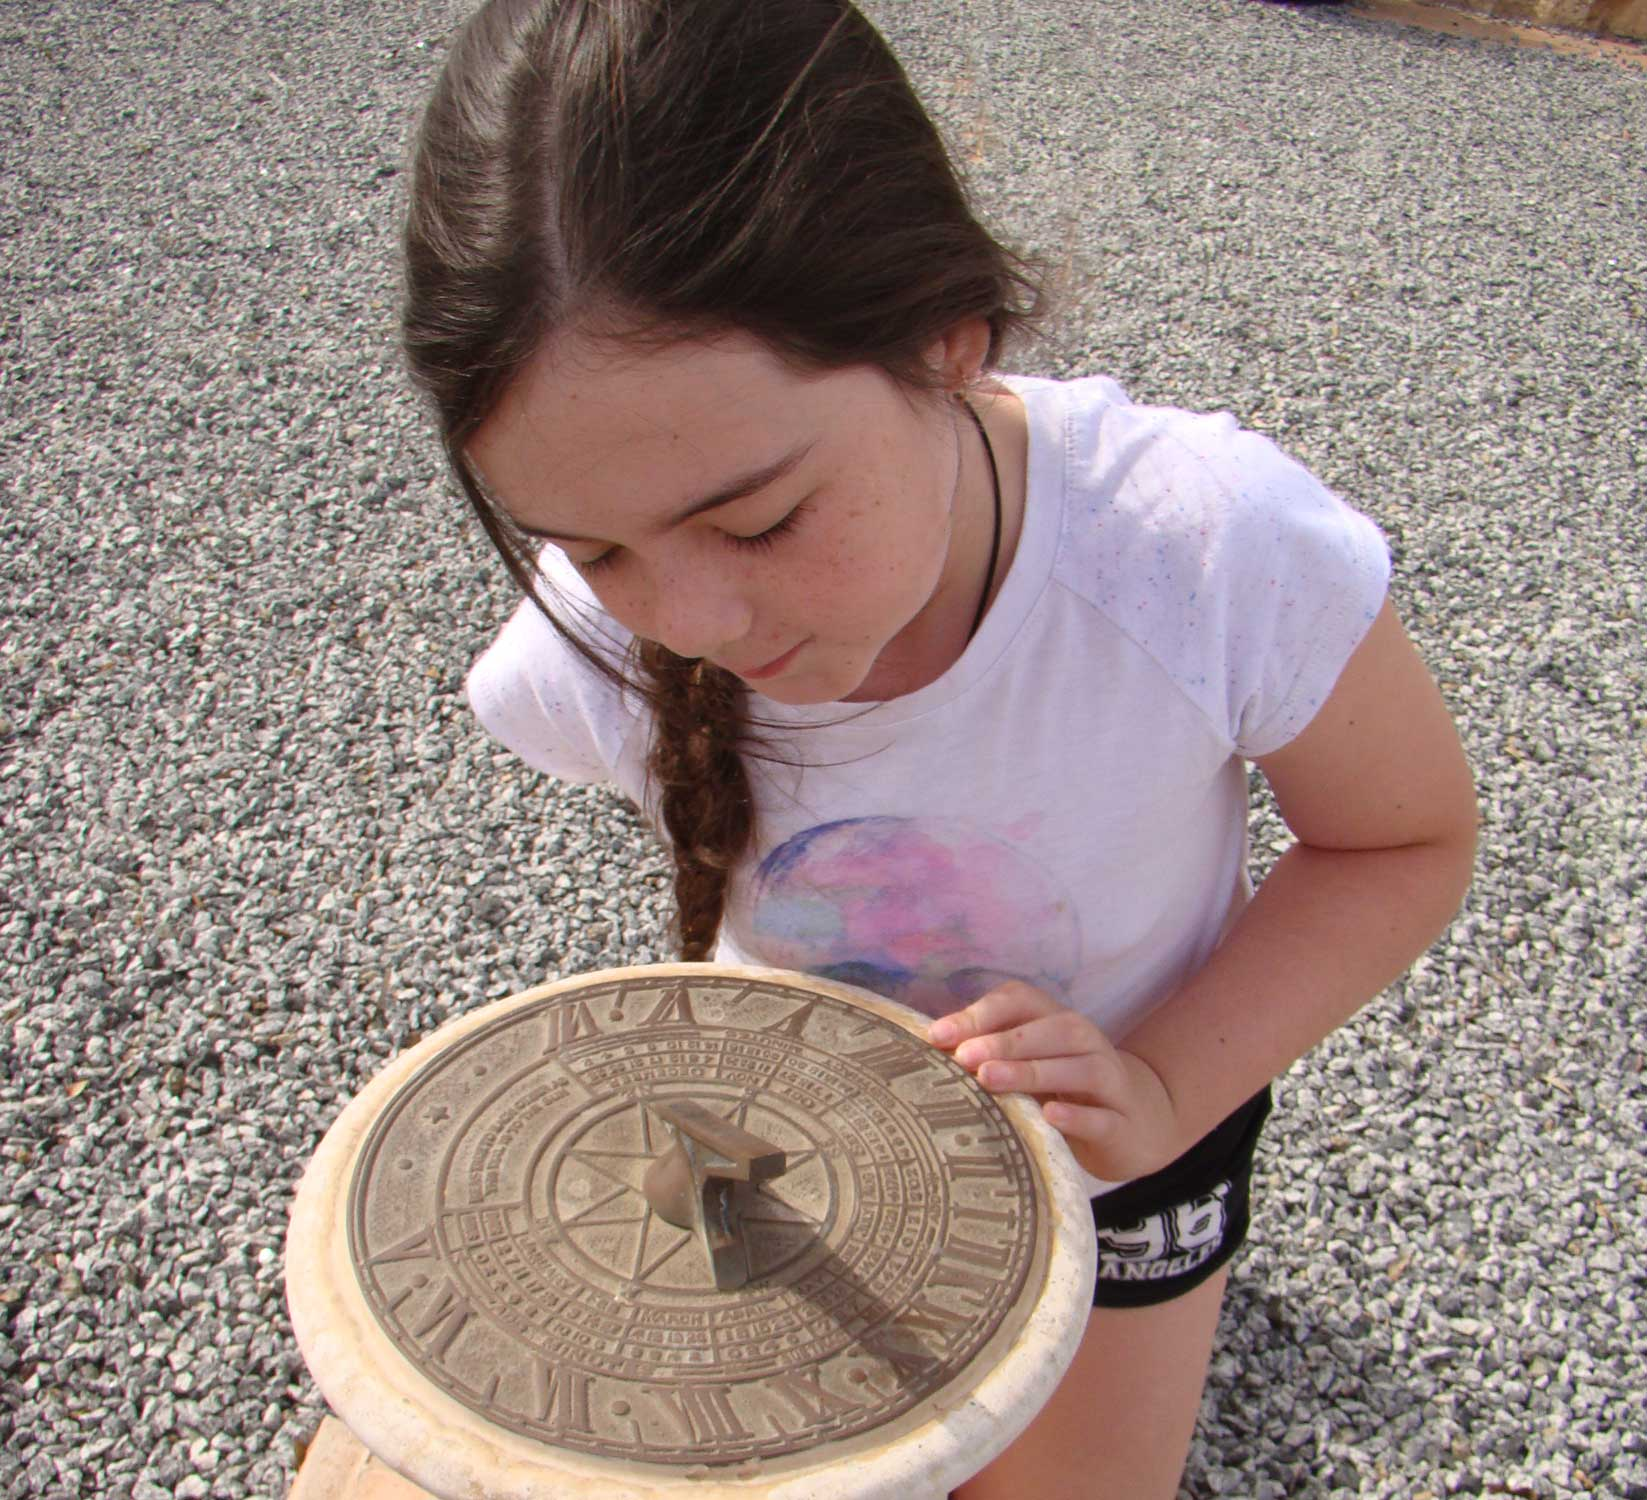 Tookii things to do with kids sundial one of the outdoor activities for kids